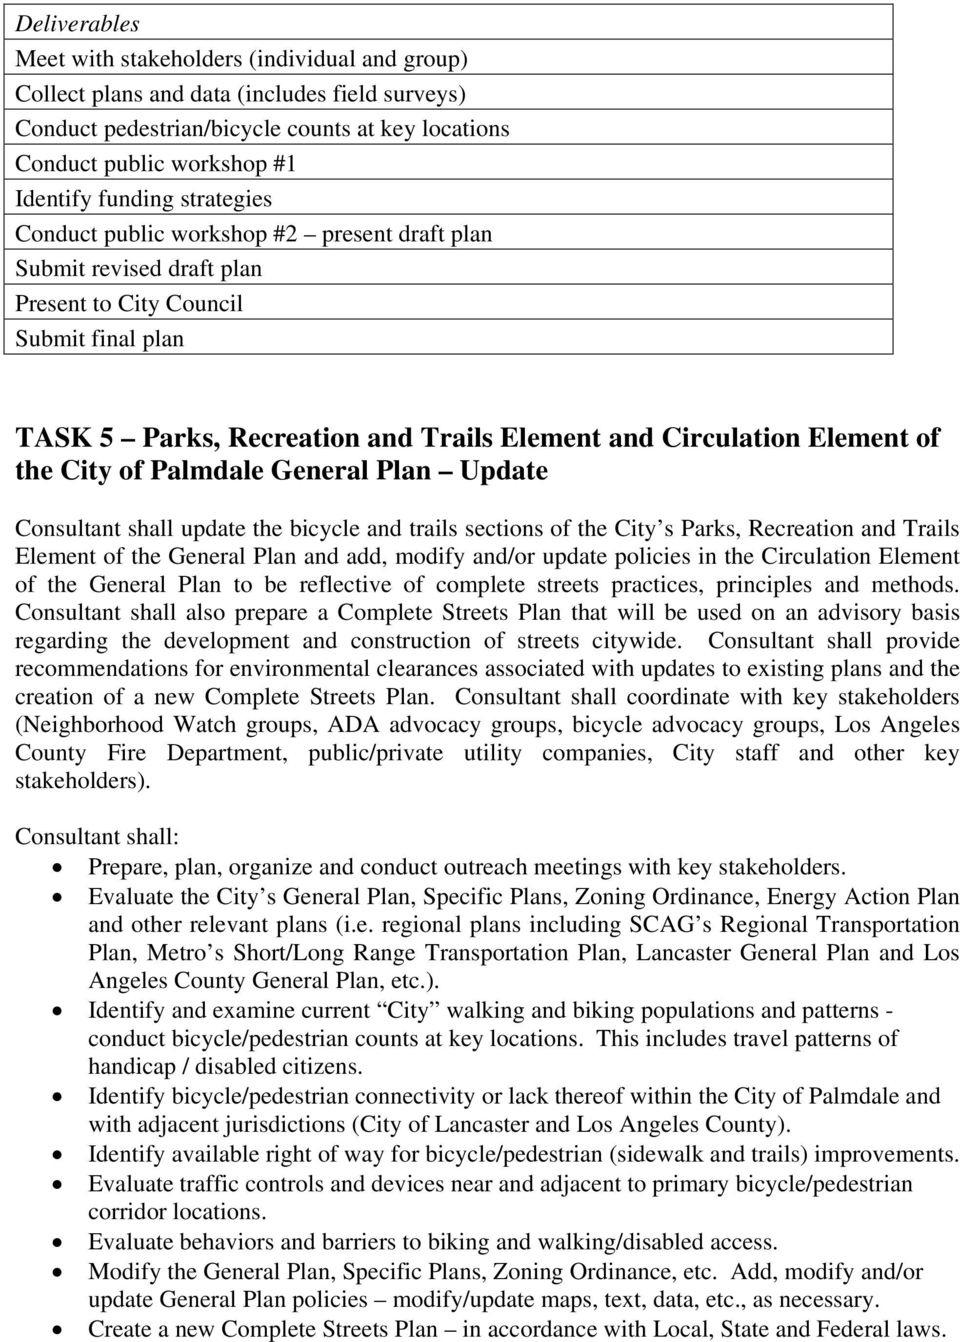 Palmdale General Plan Update Consultant shall update the bicycle and trails sections of the City s Parks, Recreation and Trails Element of the General Plan and add, modify and/or update policies in